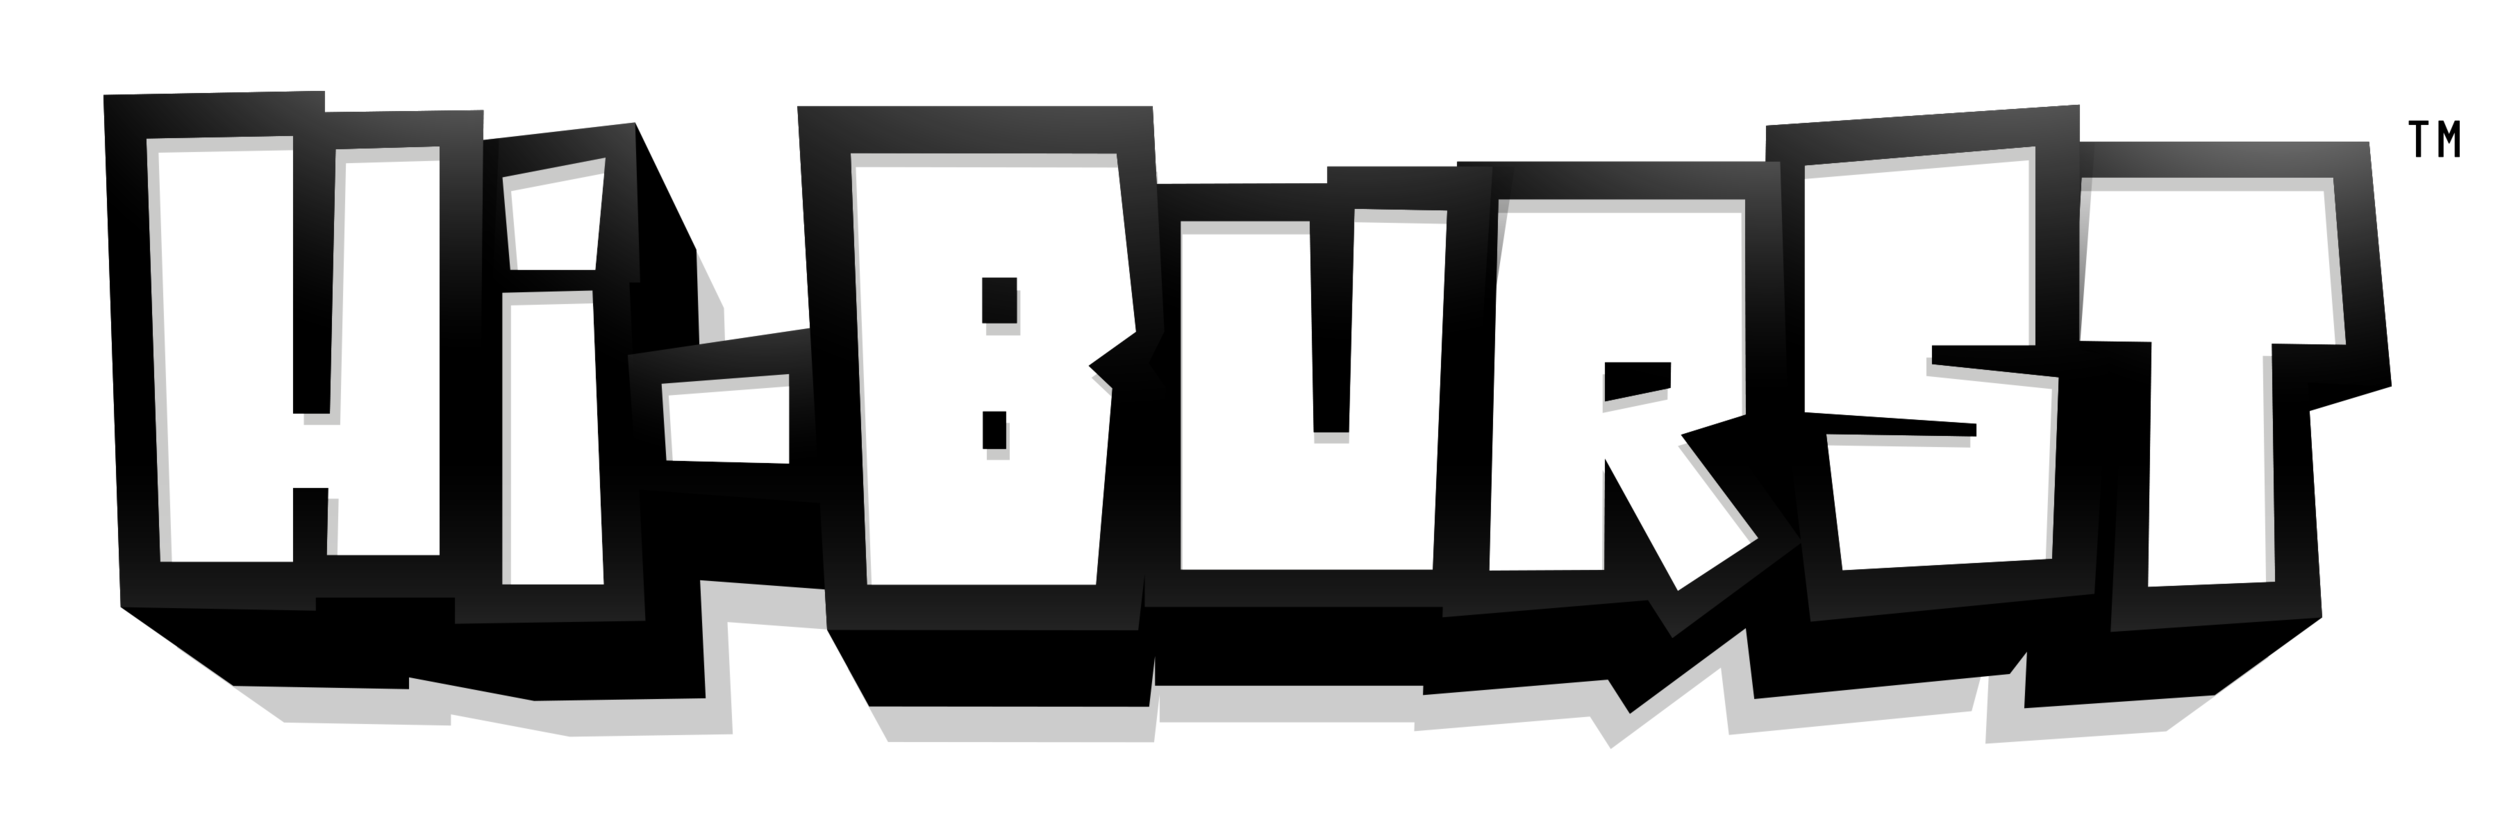 Hi-Burst-Original-Wordmark.png